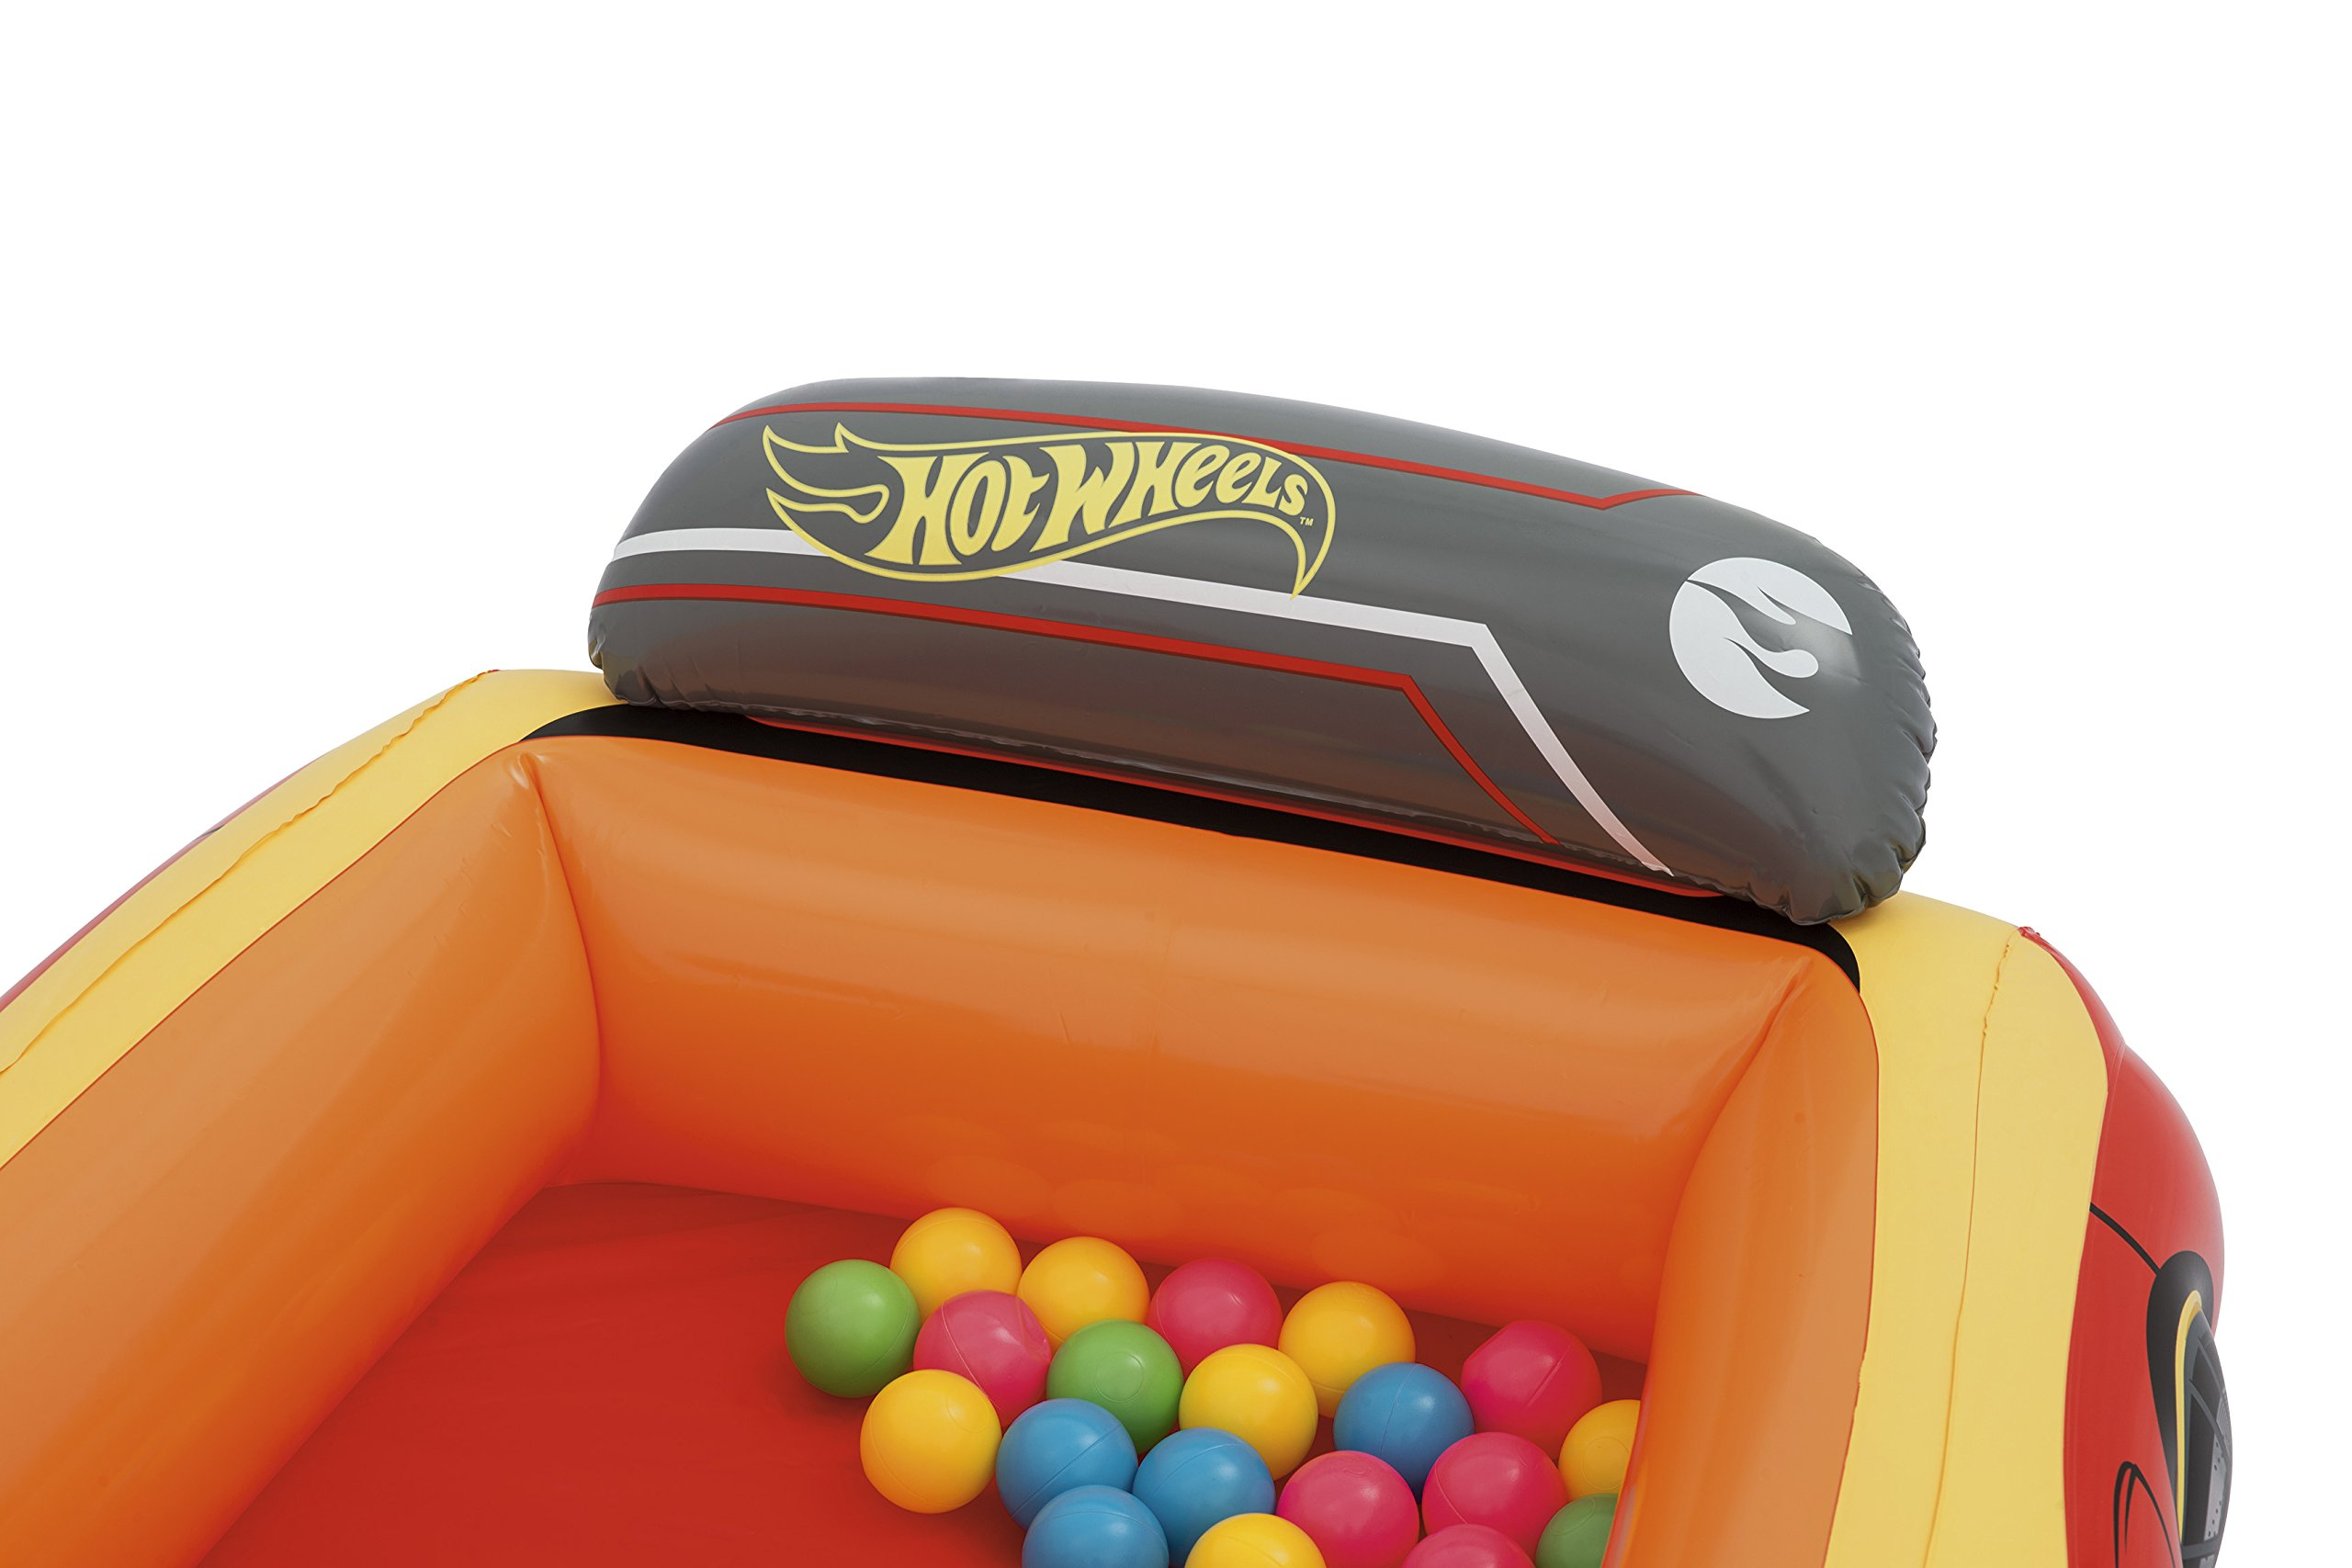 Bestway Hot Wheels Children's Inflatable Car Ball Pit, Includes 25 Balls by Bestway (Image #8)